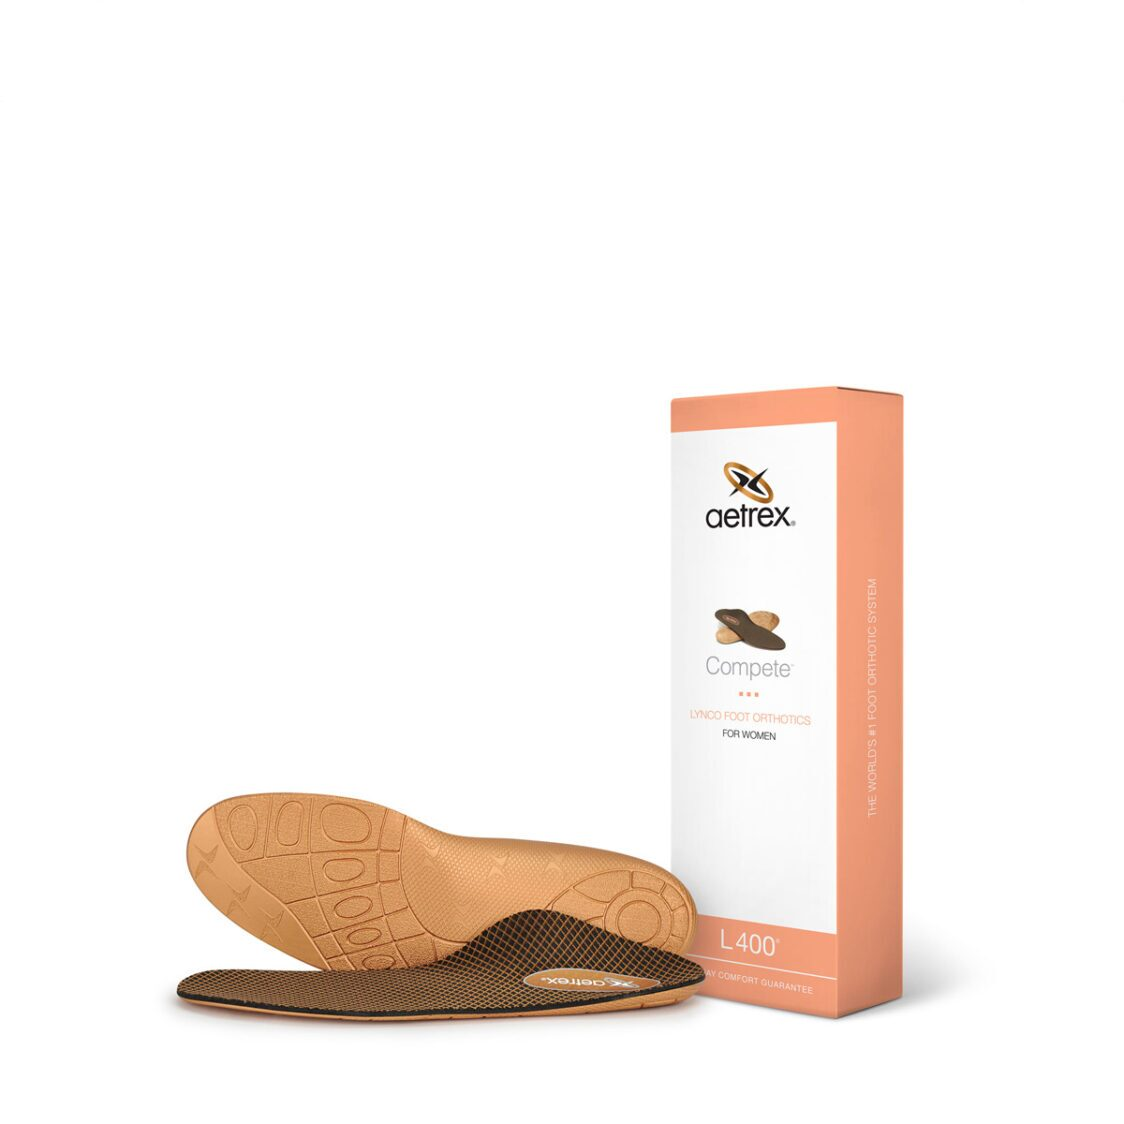 Aetrex Womens Compete Orthotics - Insole For Active Lifestyles L400W